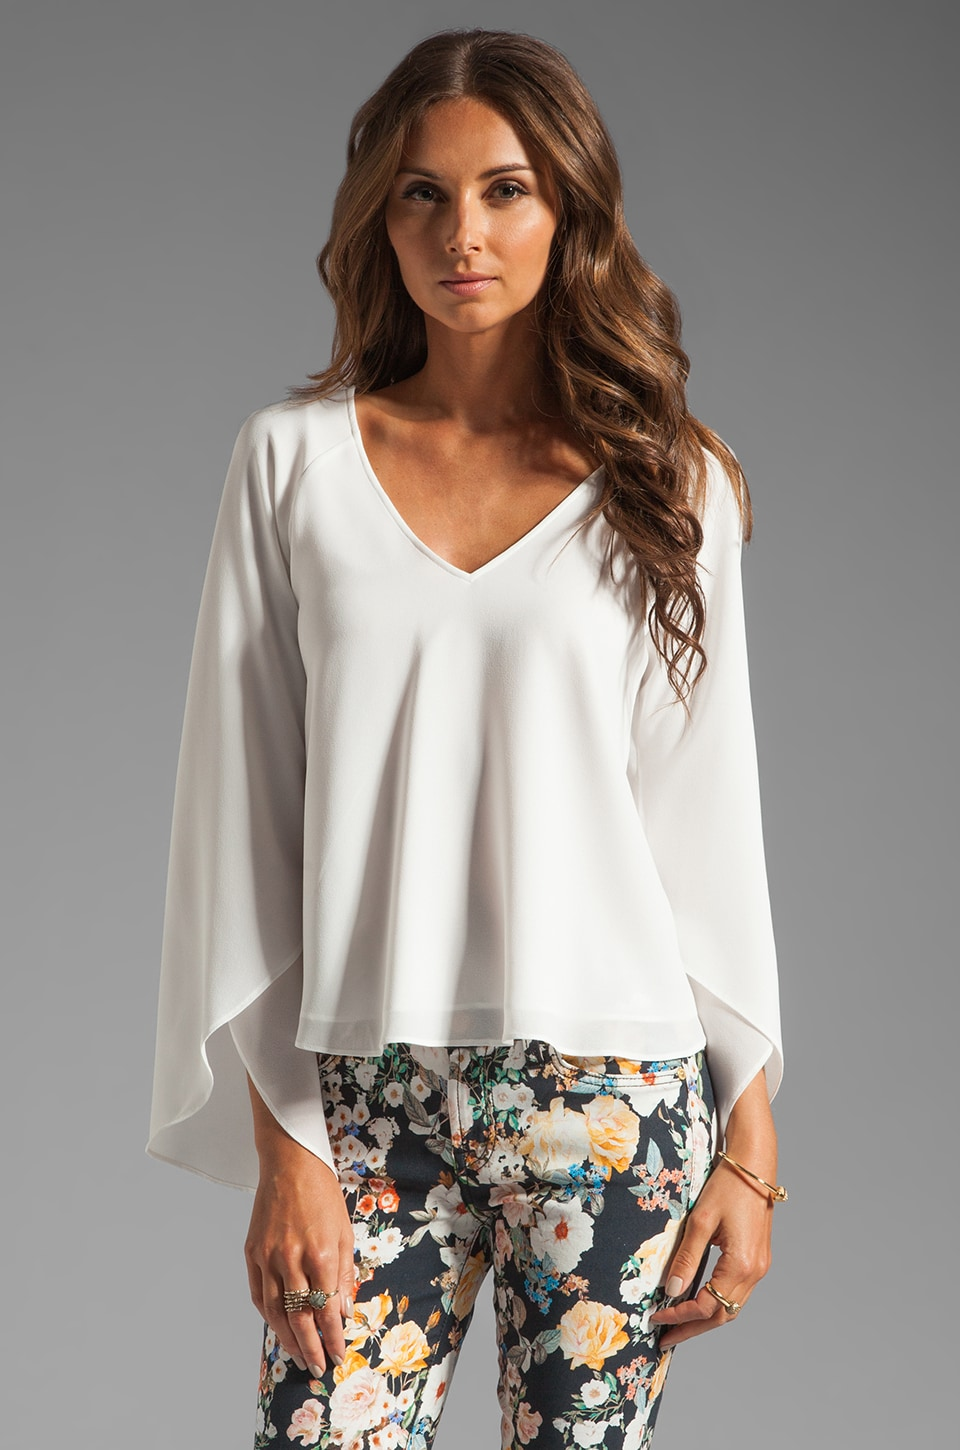 Dolce Vita Nalani Top in White